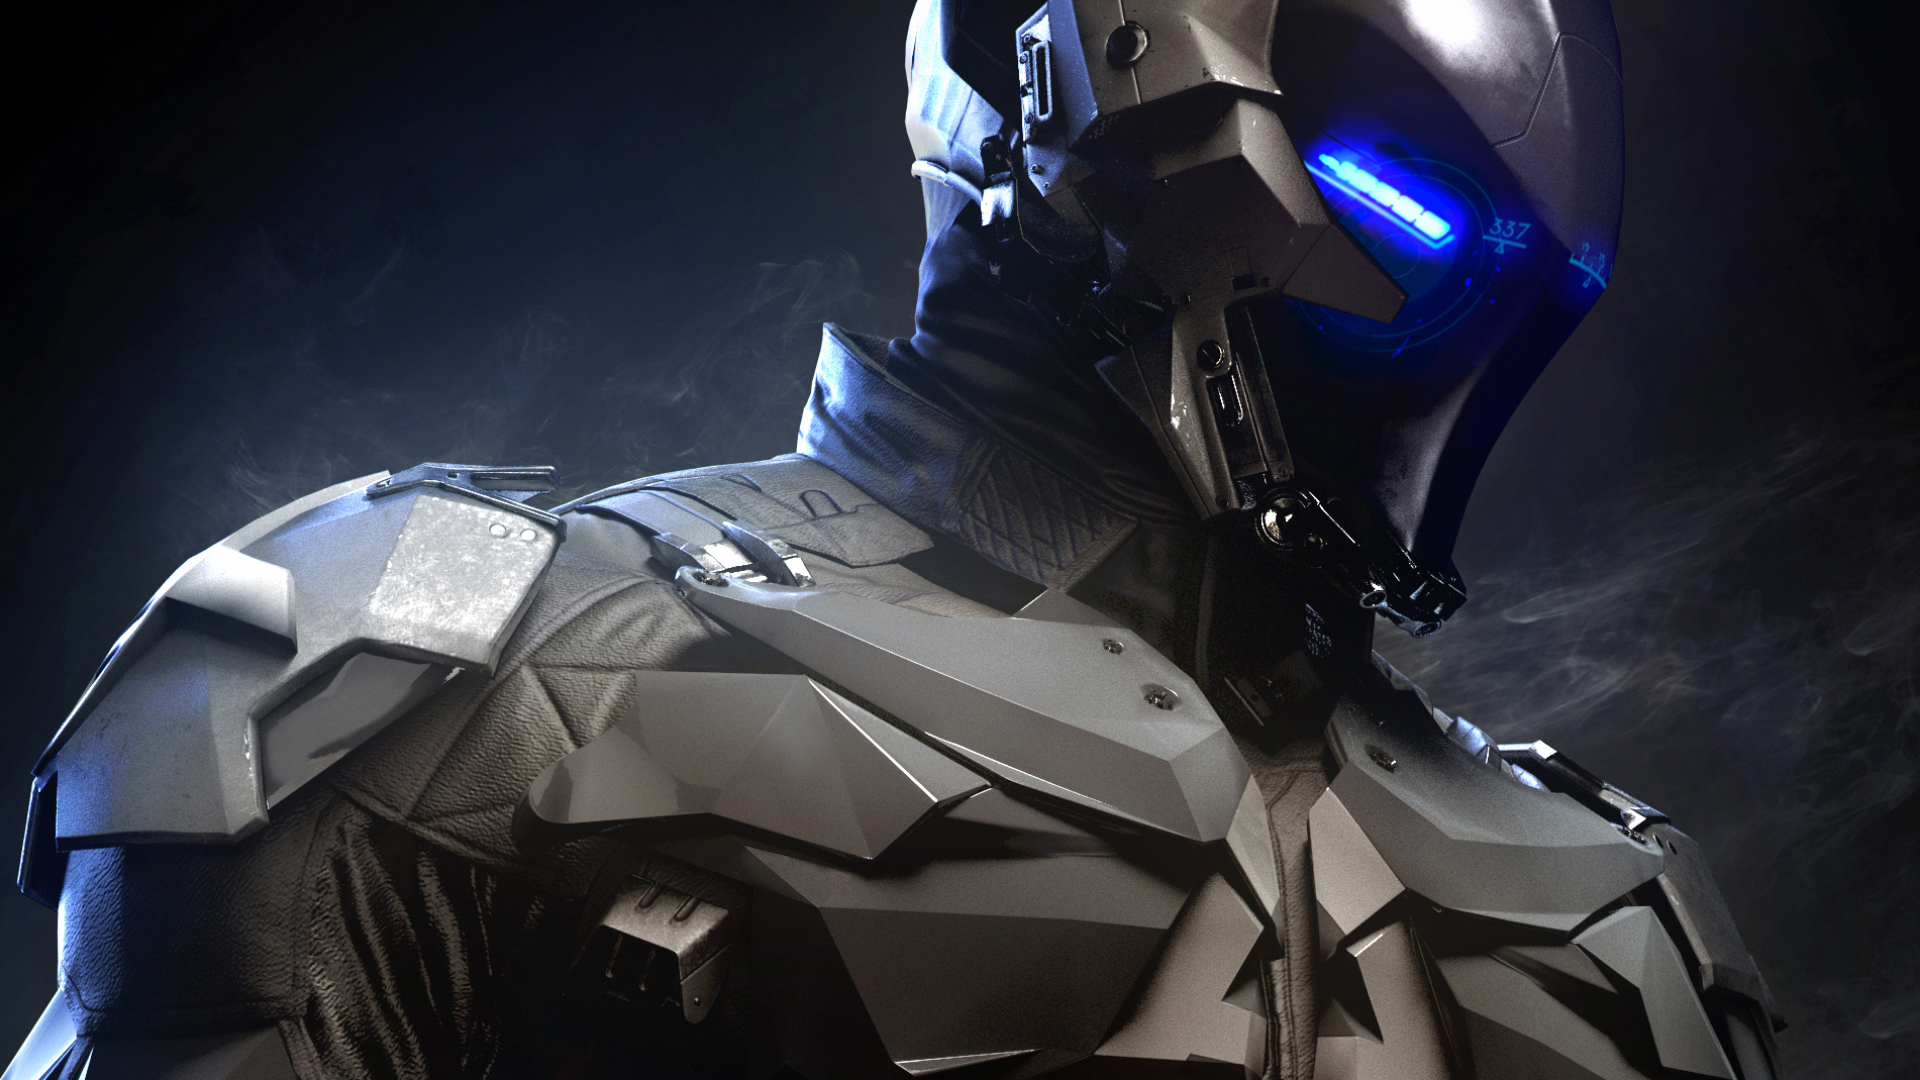 batman new villain arkham knight game hd 1920x1080 1080p wallpaper and 1920x1080